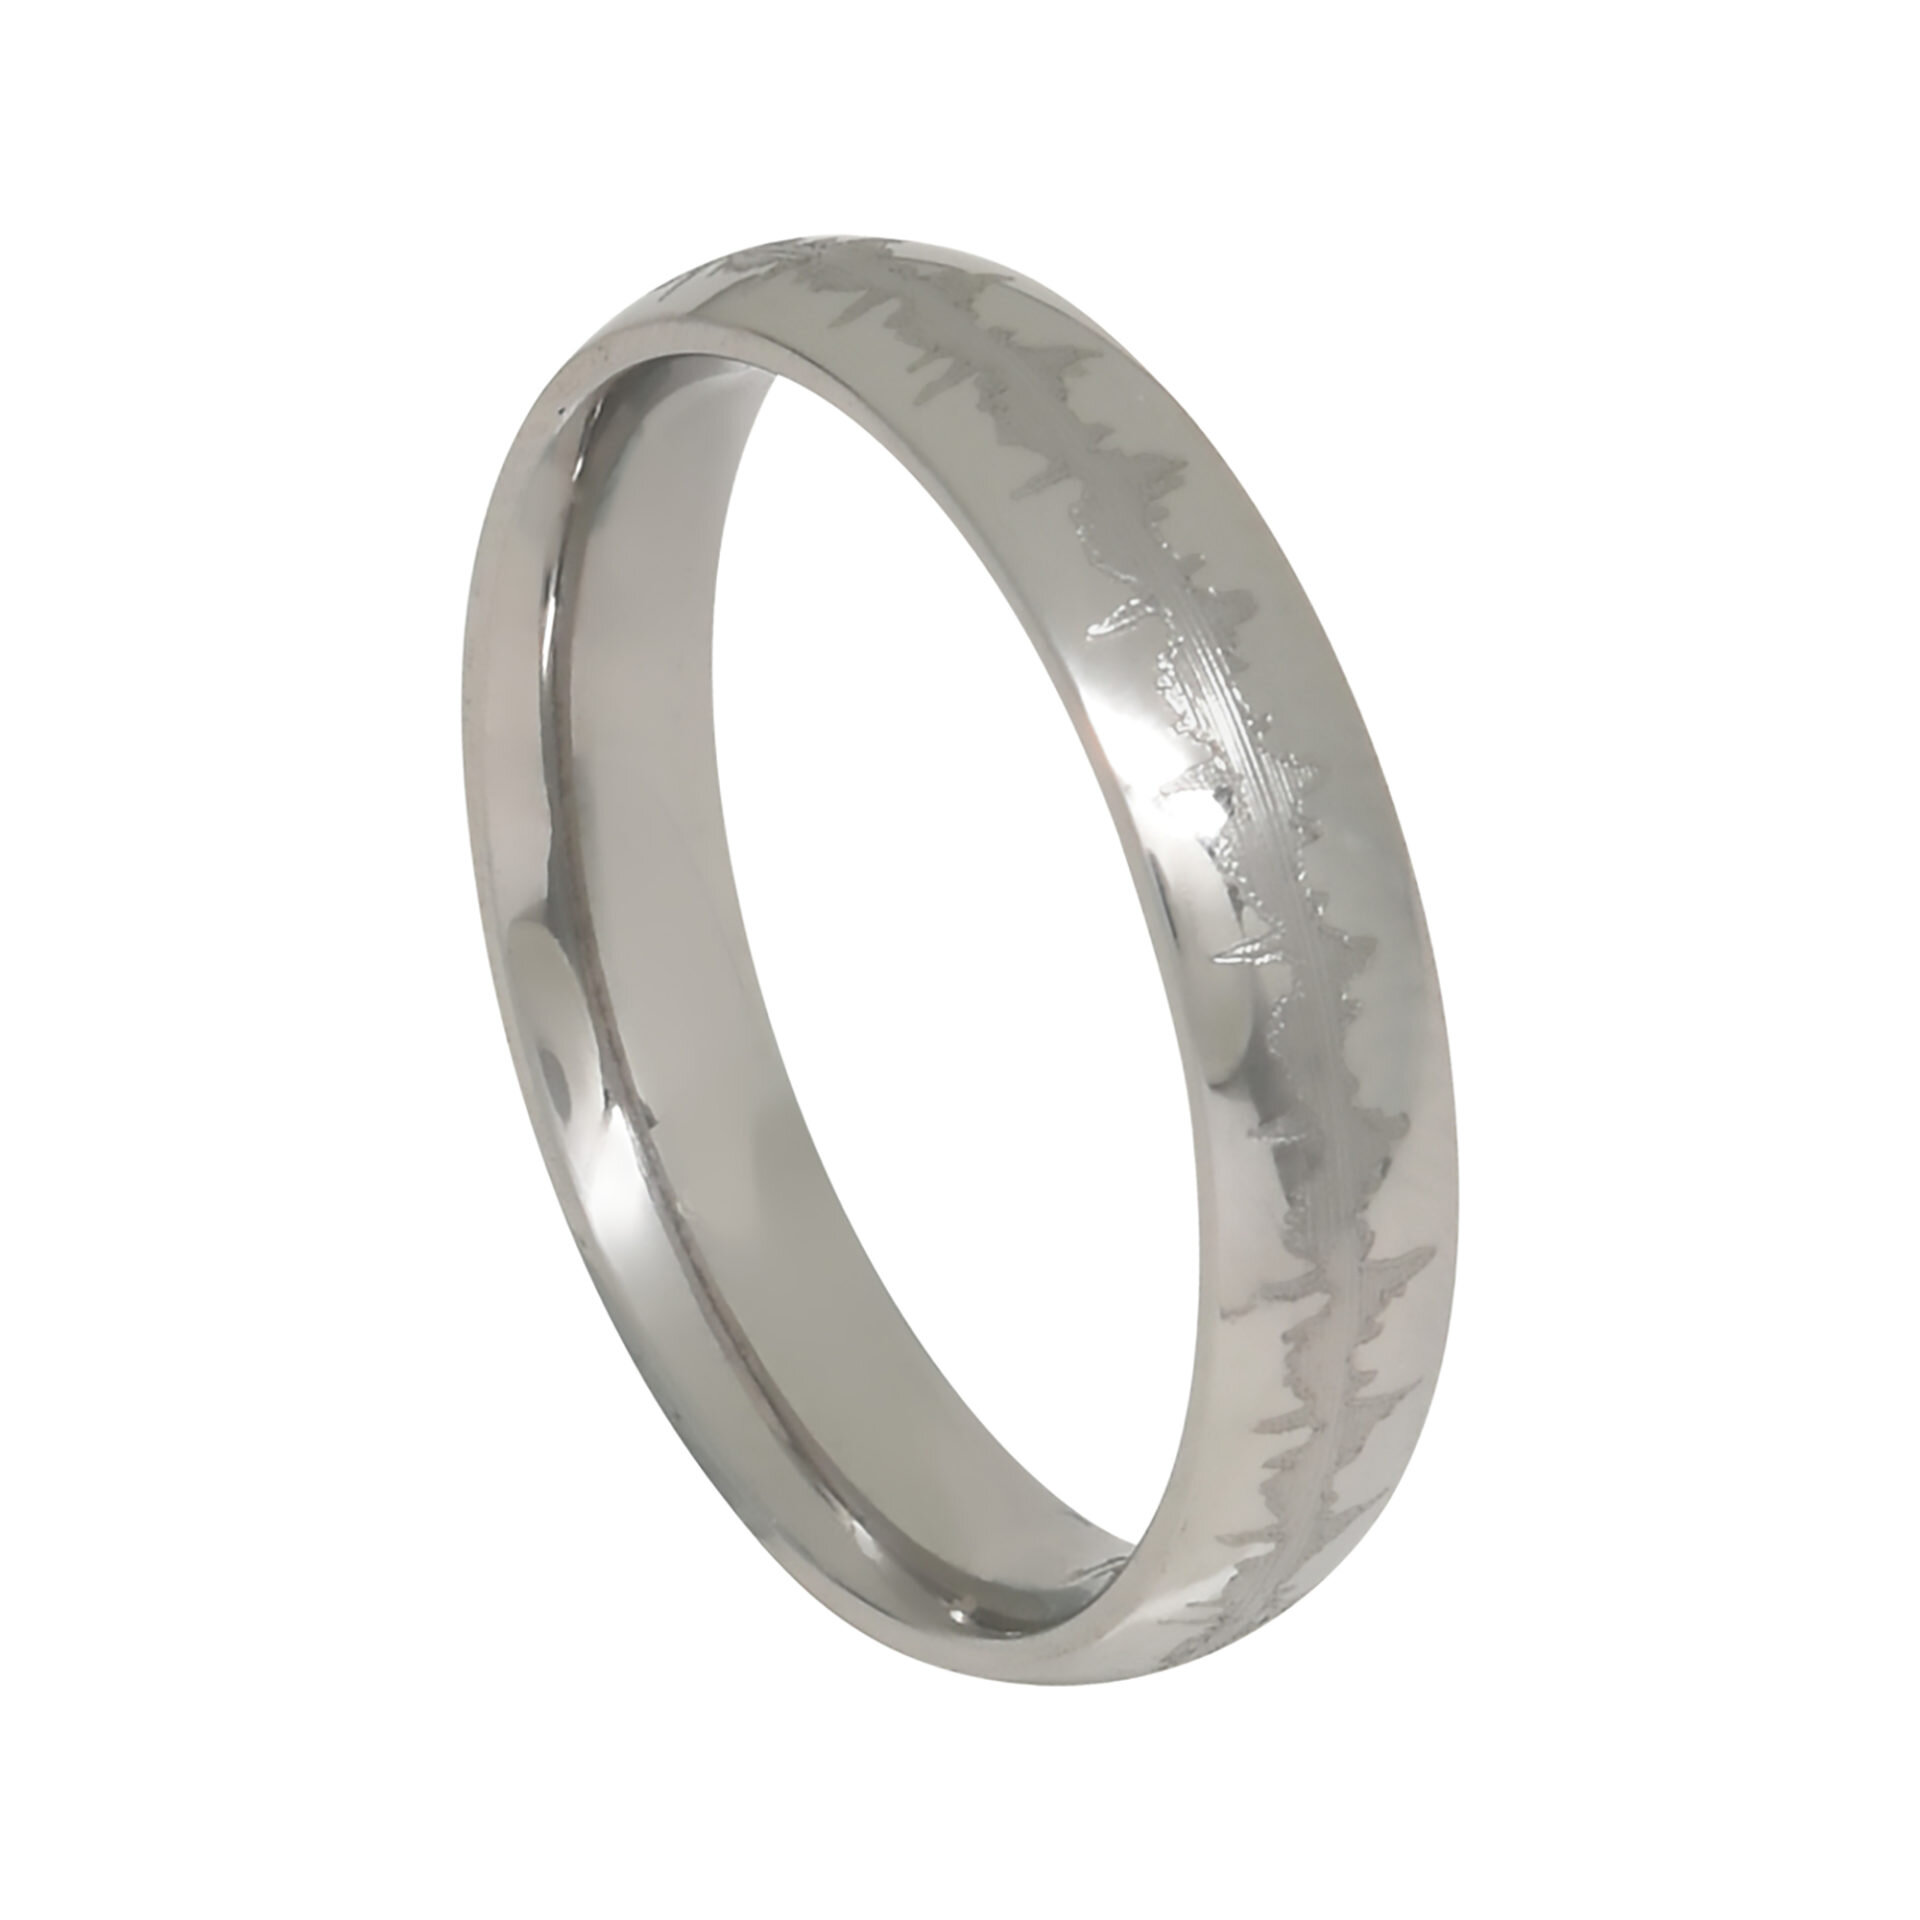 Heartbeat Comfort Fit Band Ring    $89.00